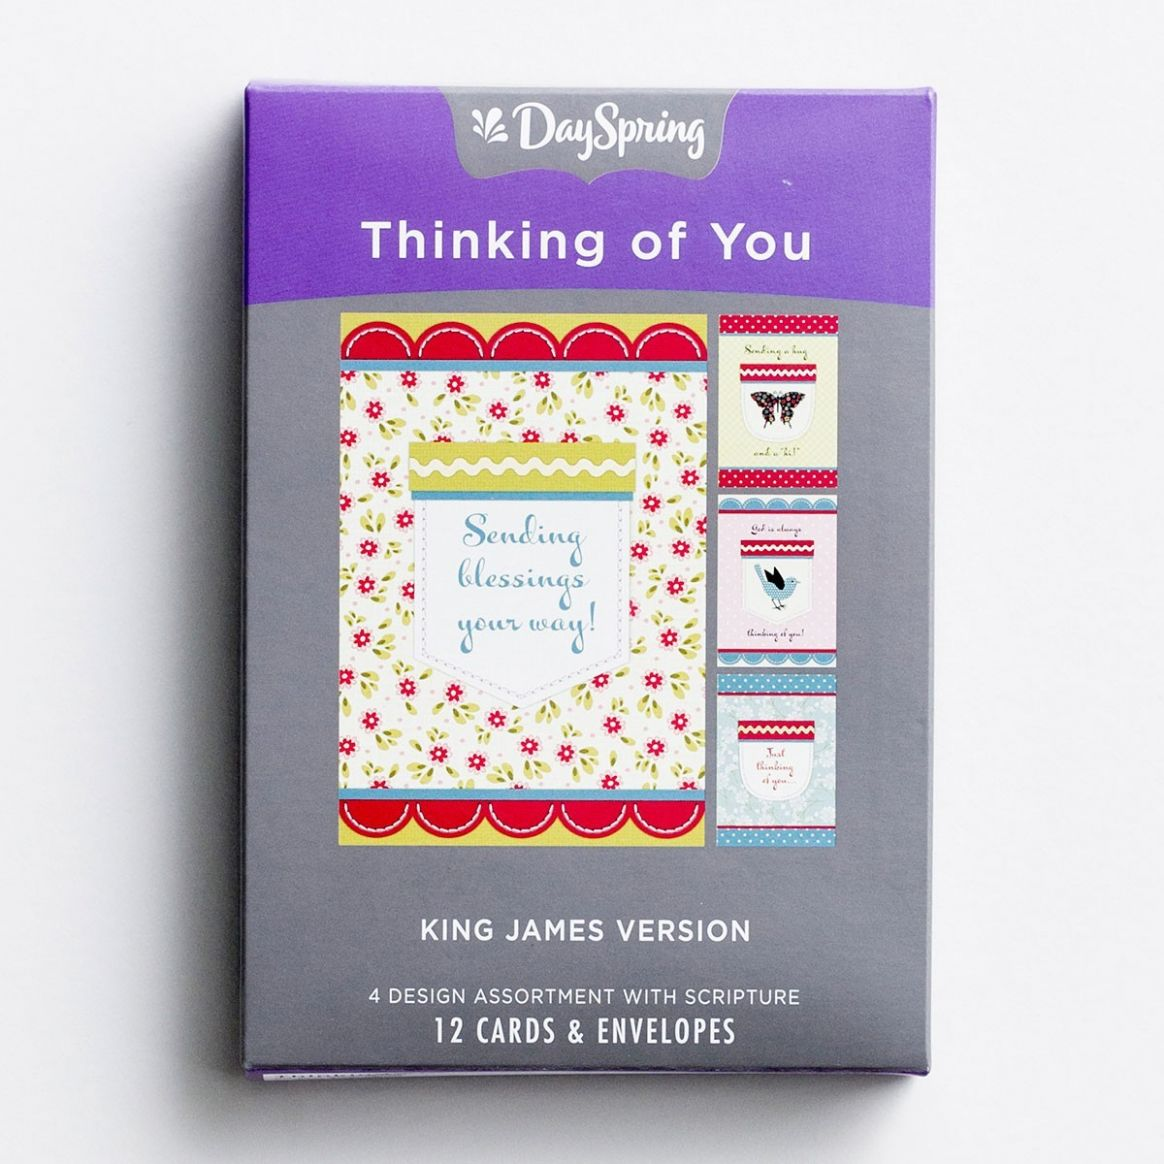 DAYSPRING BOXED CARD - Thinking of You - Pockets of Inspiration - KJV - house of inspiration inc